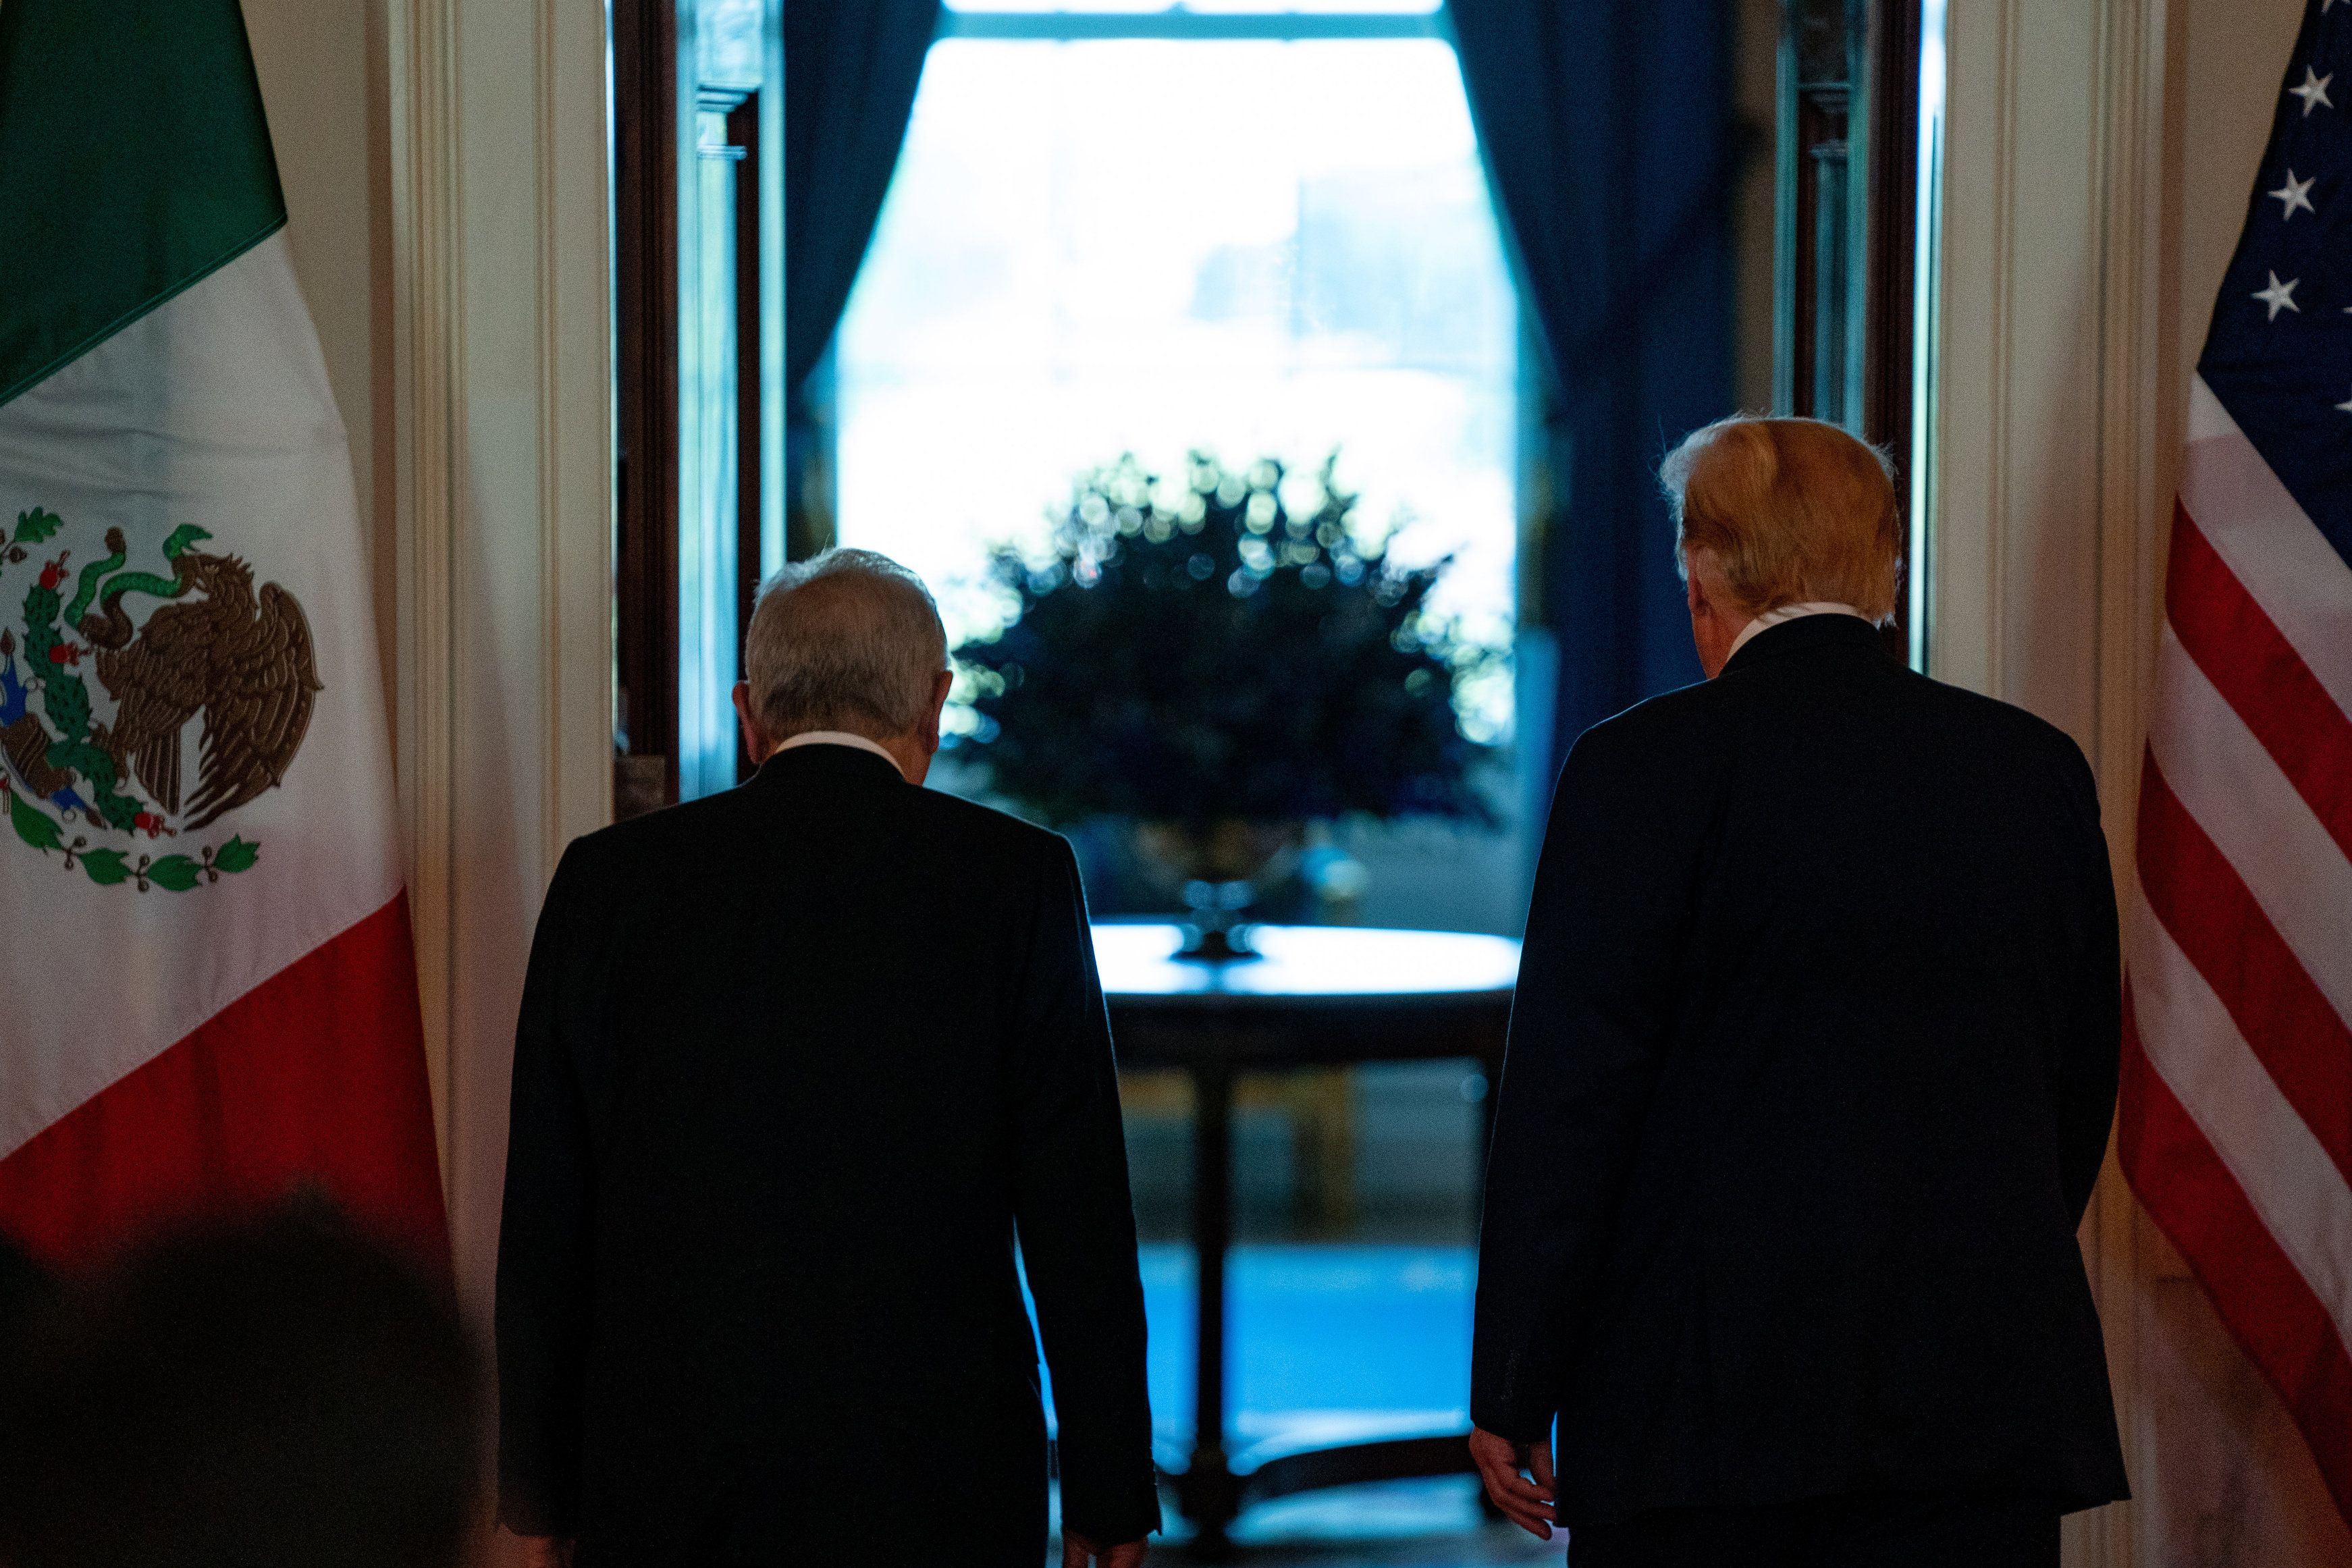 U.S. President Donald Trump and Andres Manuel Lopez Obrador, Mexico's president, depart during a news conference in the Cross Hall of the White House in Washington, D.C., U.S., on Wednesday, July 8, 2020.